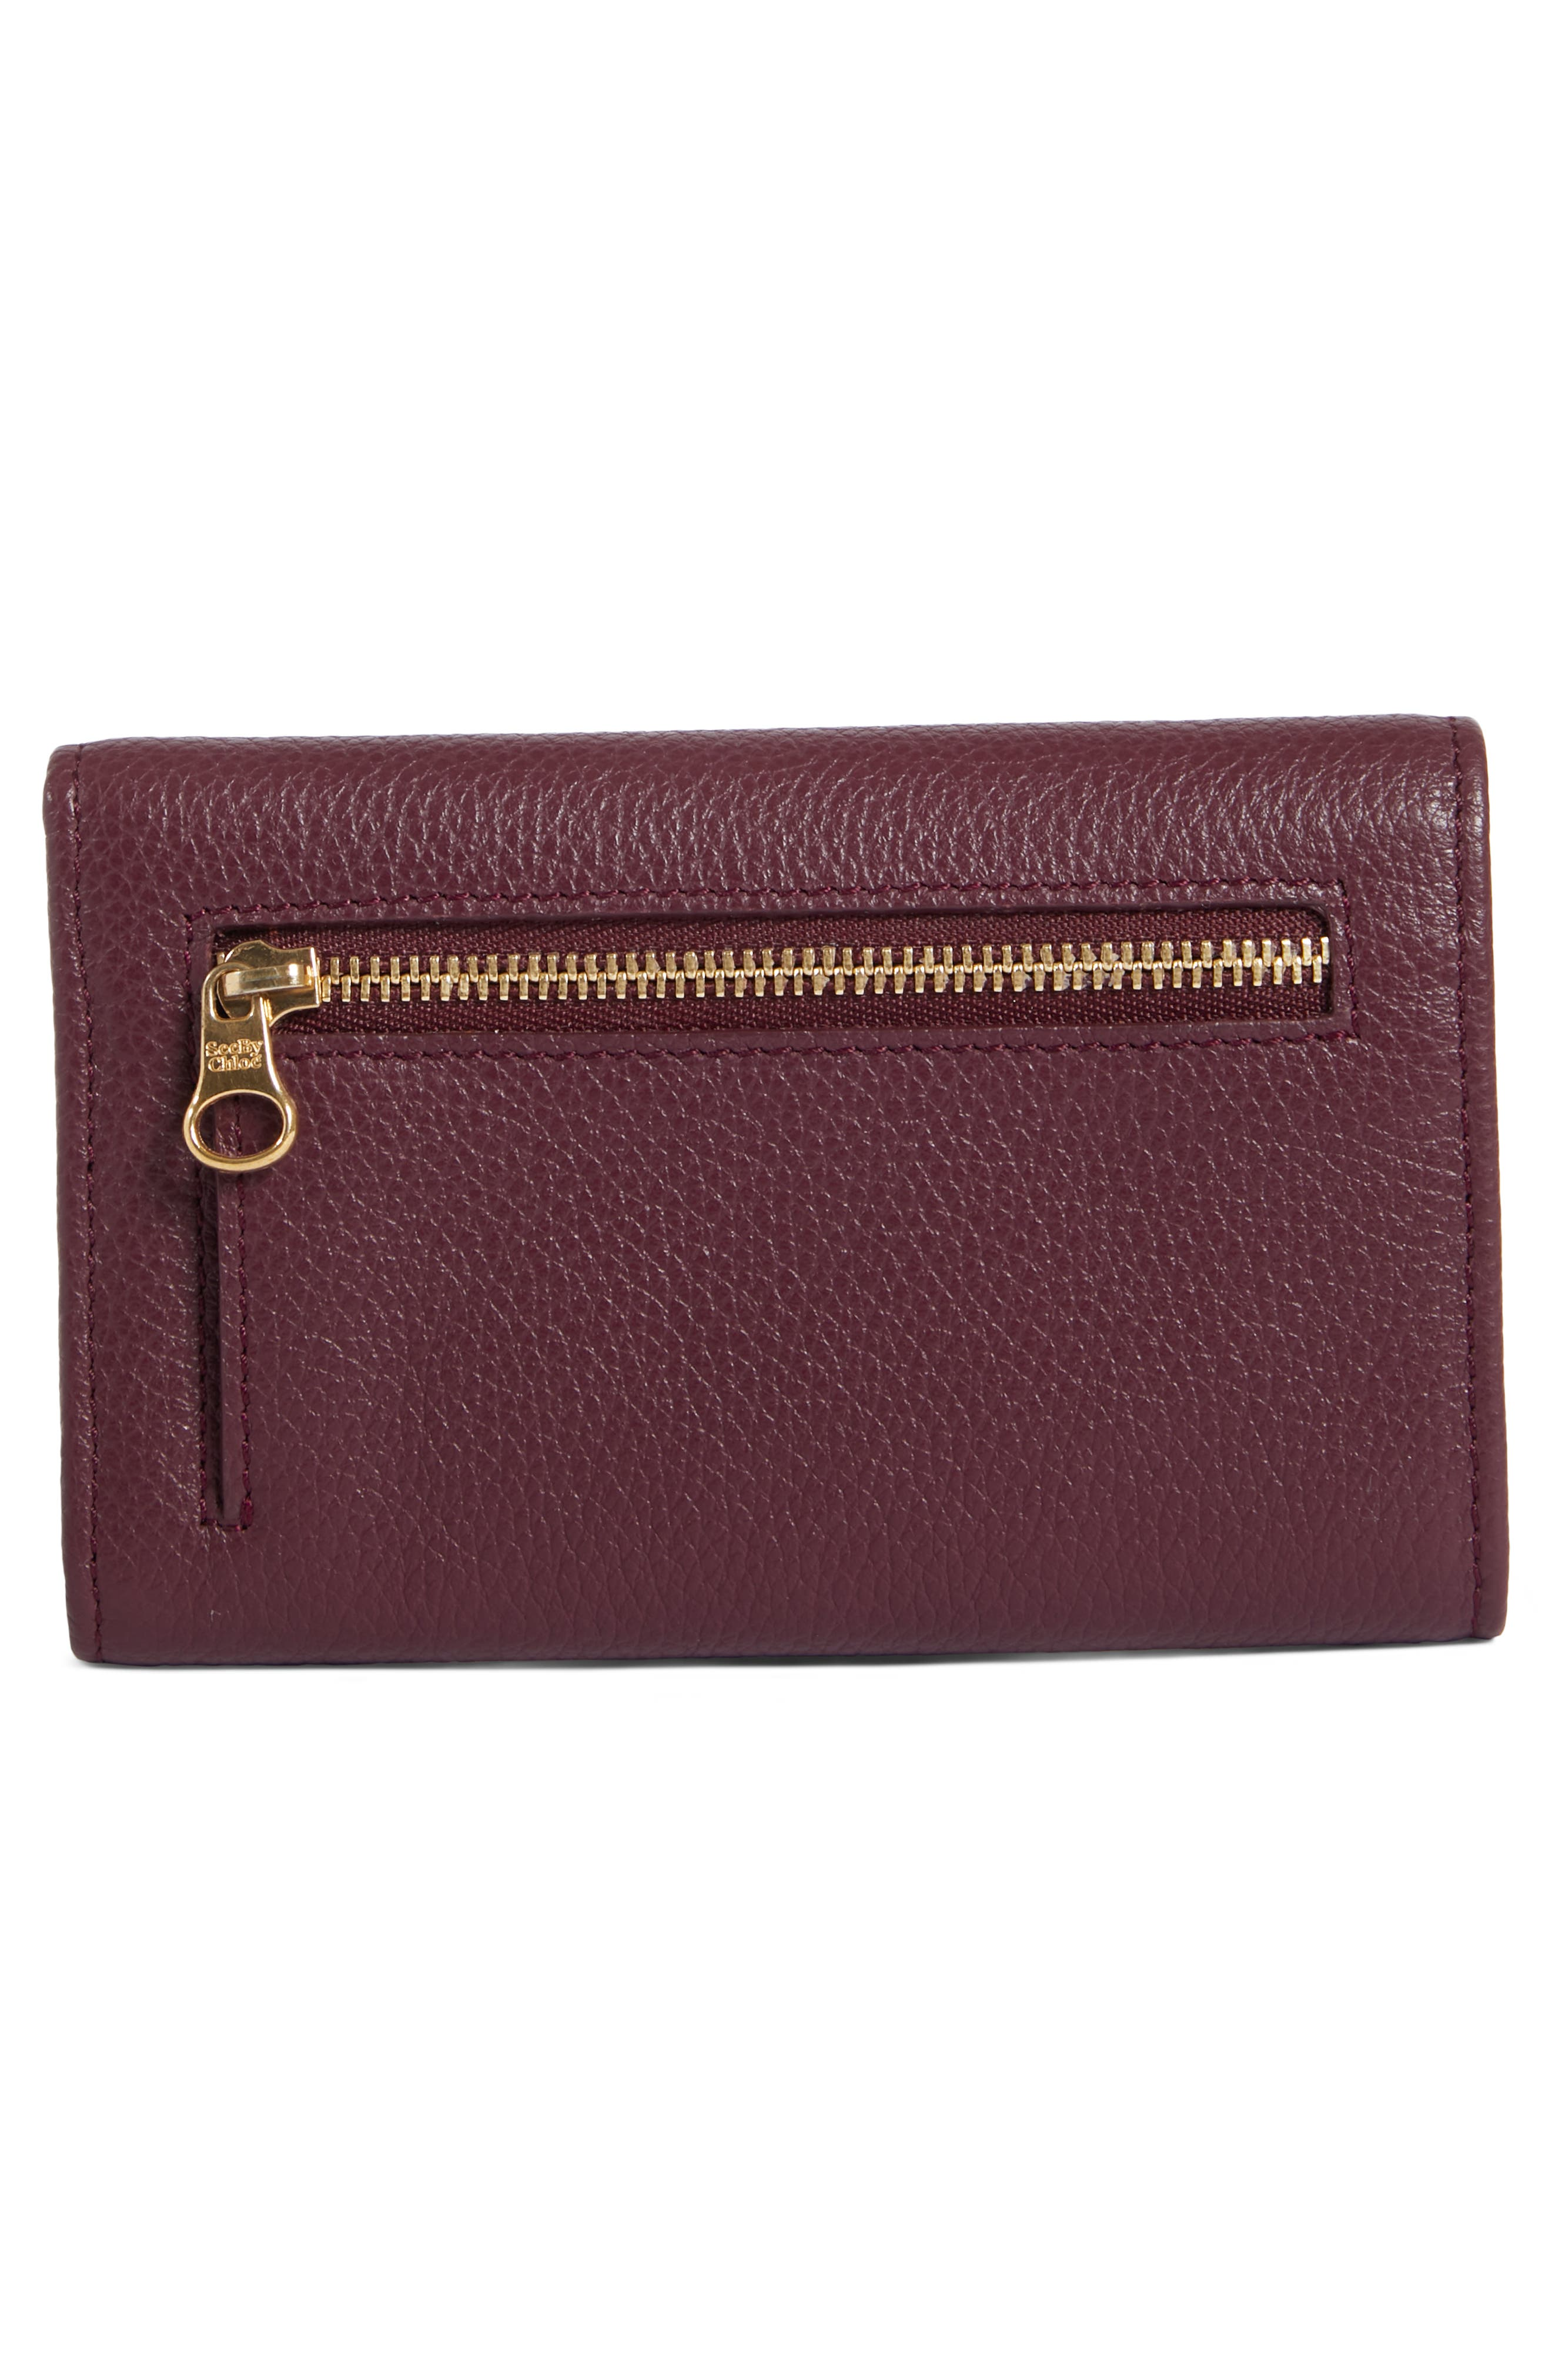 Lizzie Trifold Wallet,                             Alternate thumbnail 2, color,                             501